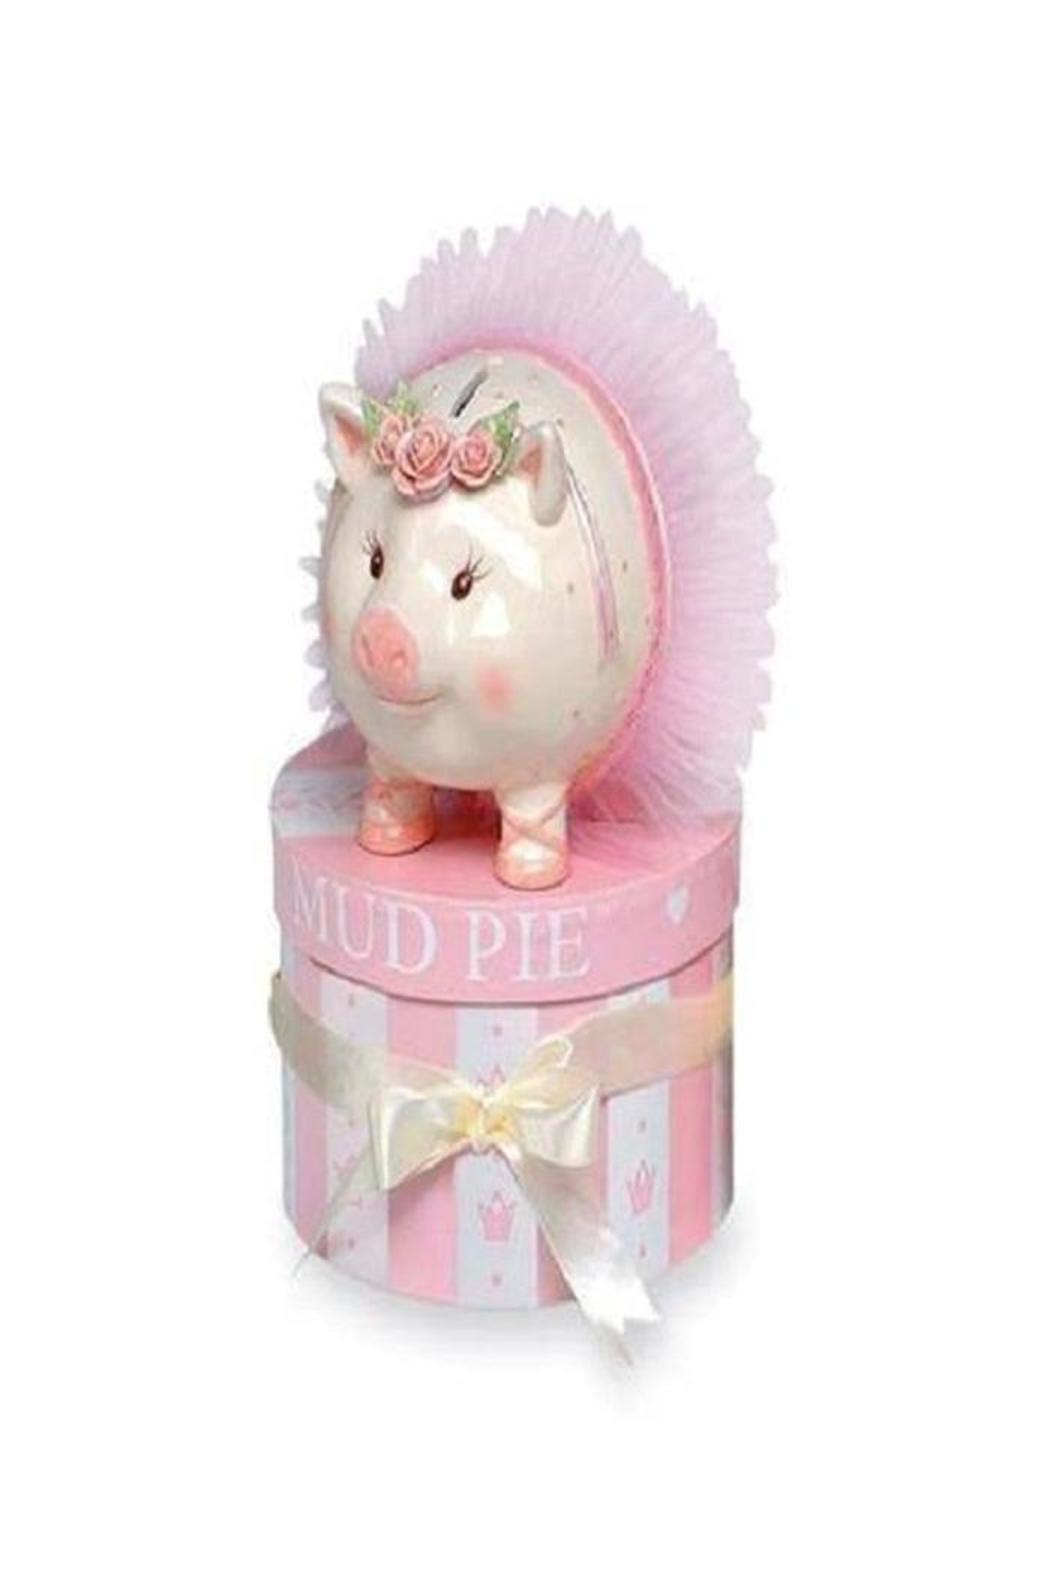 Mud pie ballerina piggy bank mud pie - Mud Pie Ballerina Piggy Bank Front Cropped Image